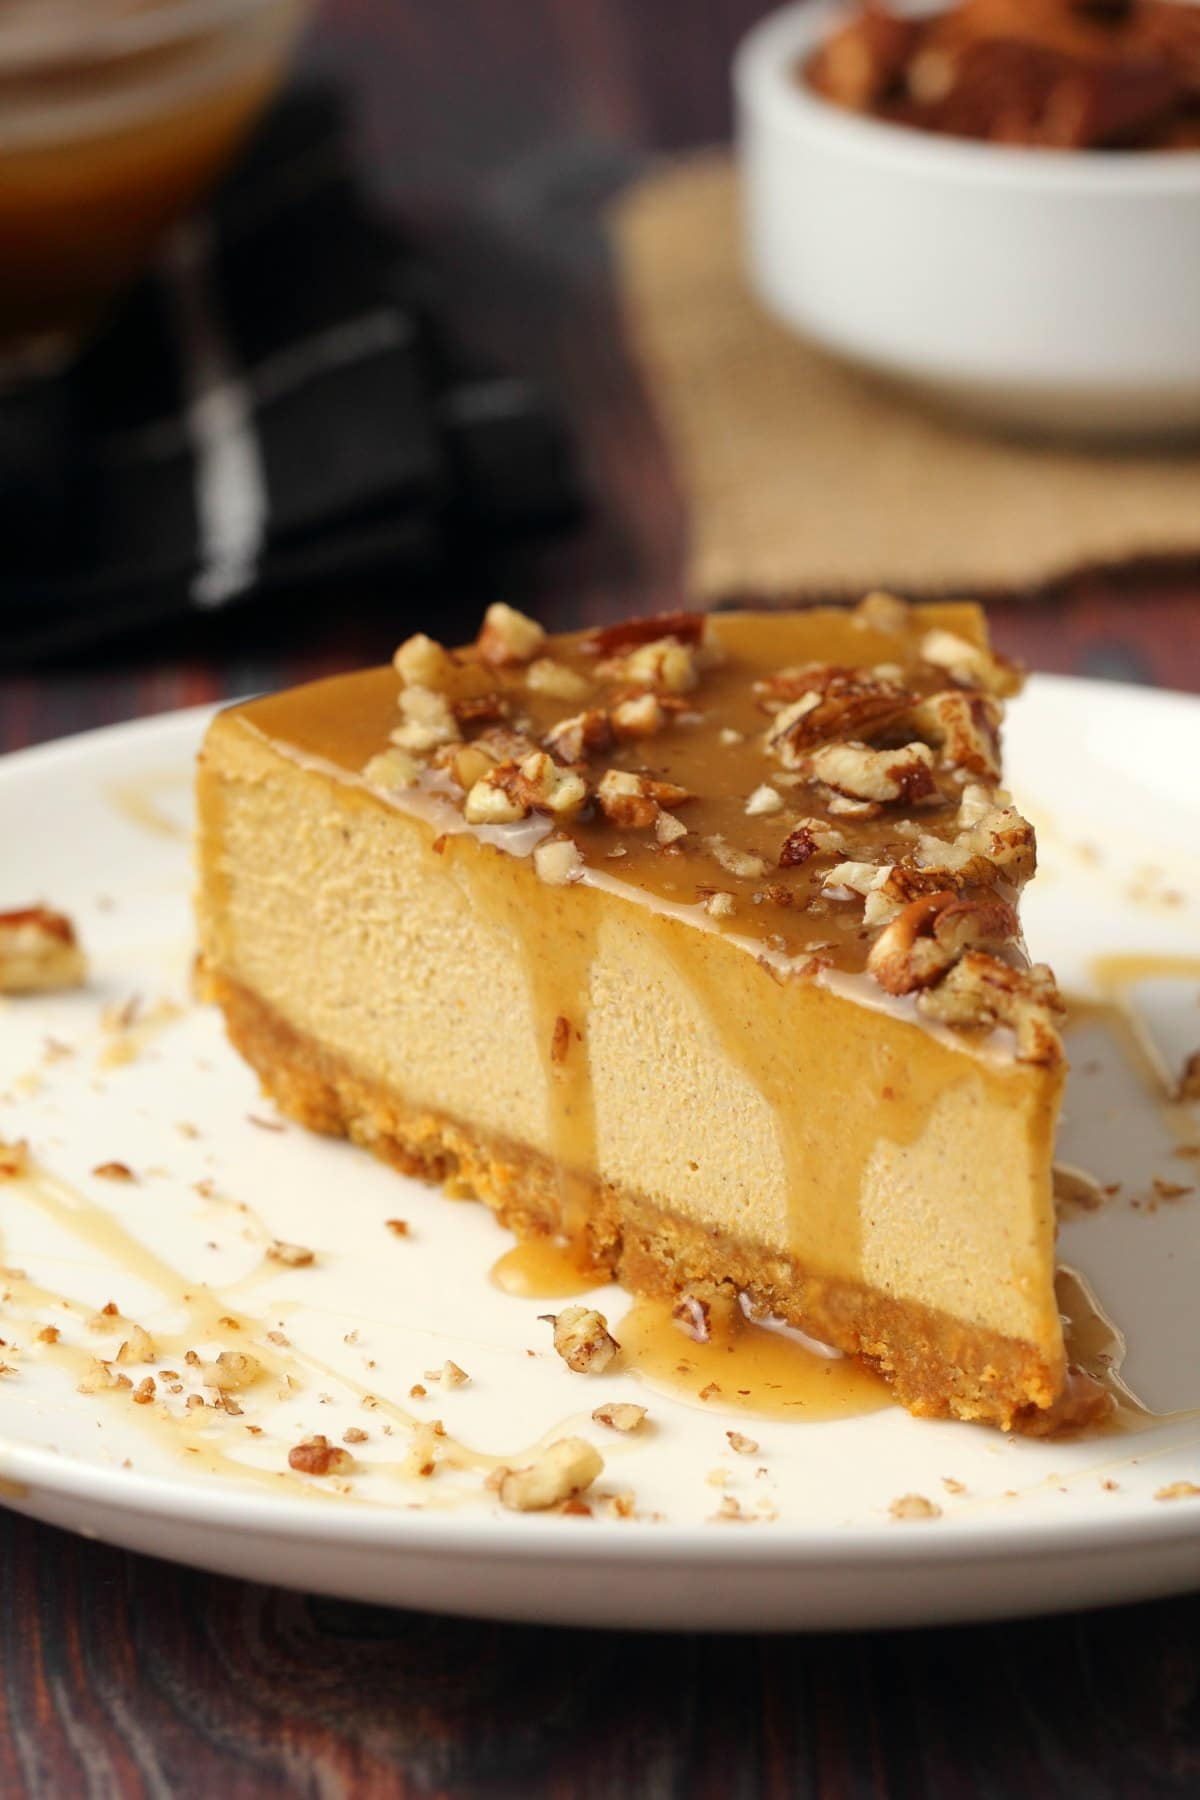 A slice of vegan pumpkin cheesecake topped with caramel sauce and crushed pecans on a white plate.